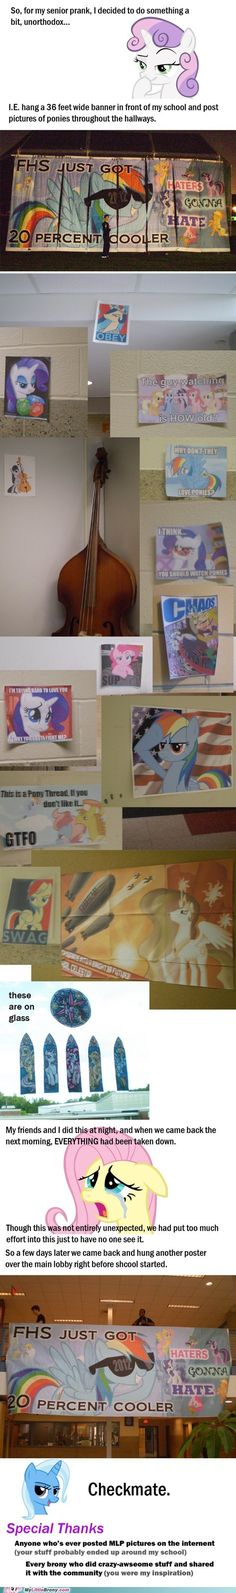 my little pony, friendship is magic, brony - Pranking Done Right<------ omg what school is this my towns high school is FHS but my brother would have told me is somthing like this happened Mlp My Little Pony, My Little Pony Friendship, Mlp Memes, Senior Pranks, Mlp Fan Art, Mlp Comics, Little Poney, Freaking Awesome, April Fools